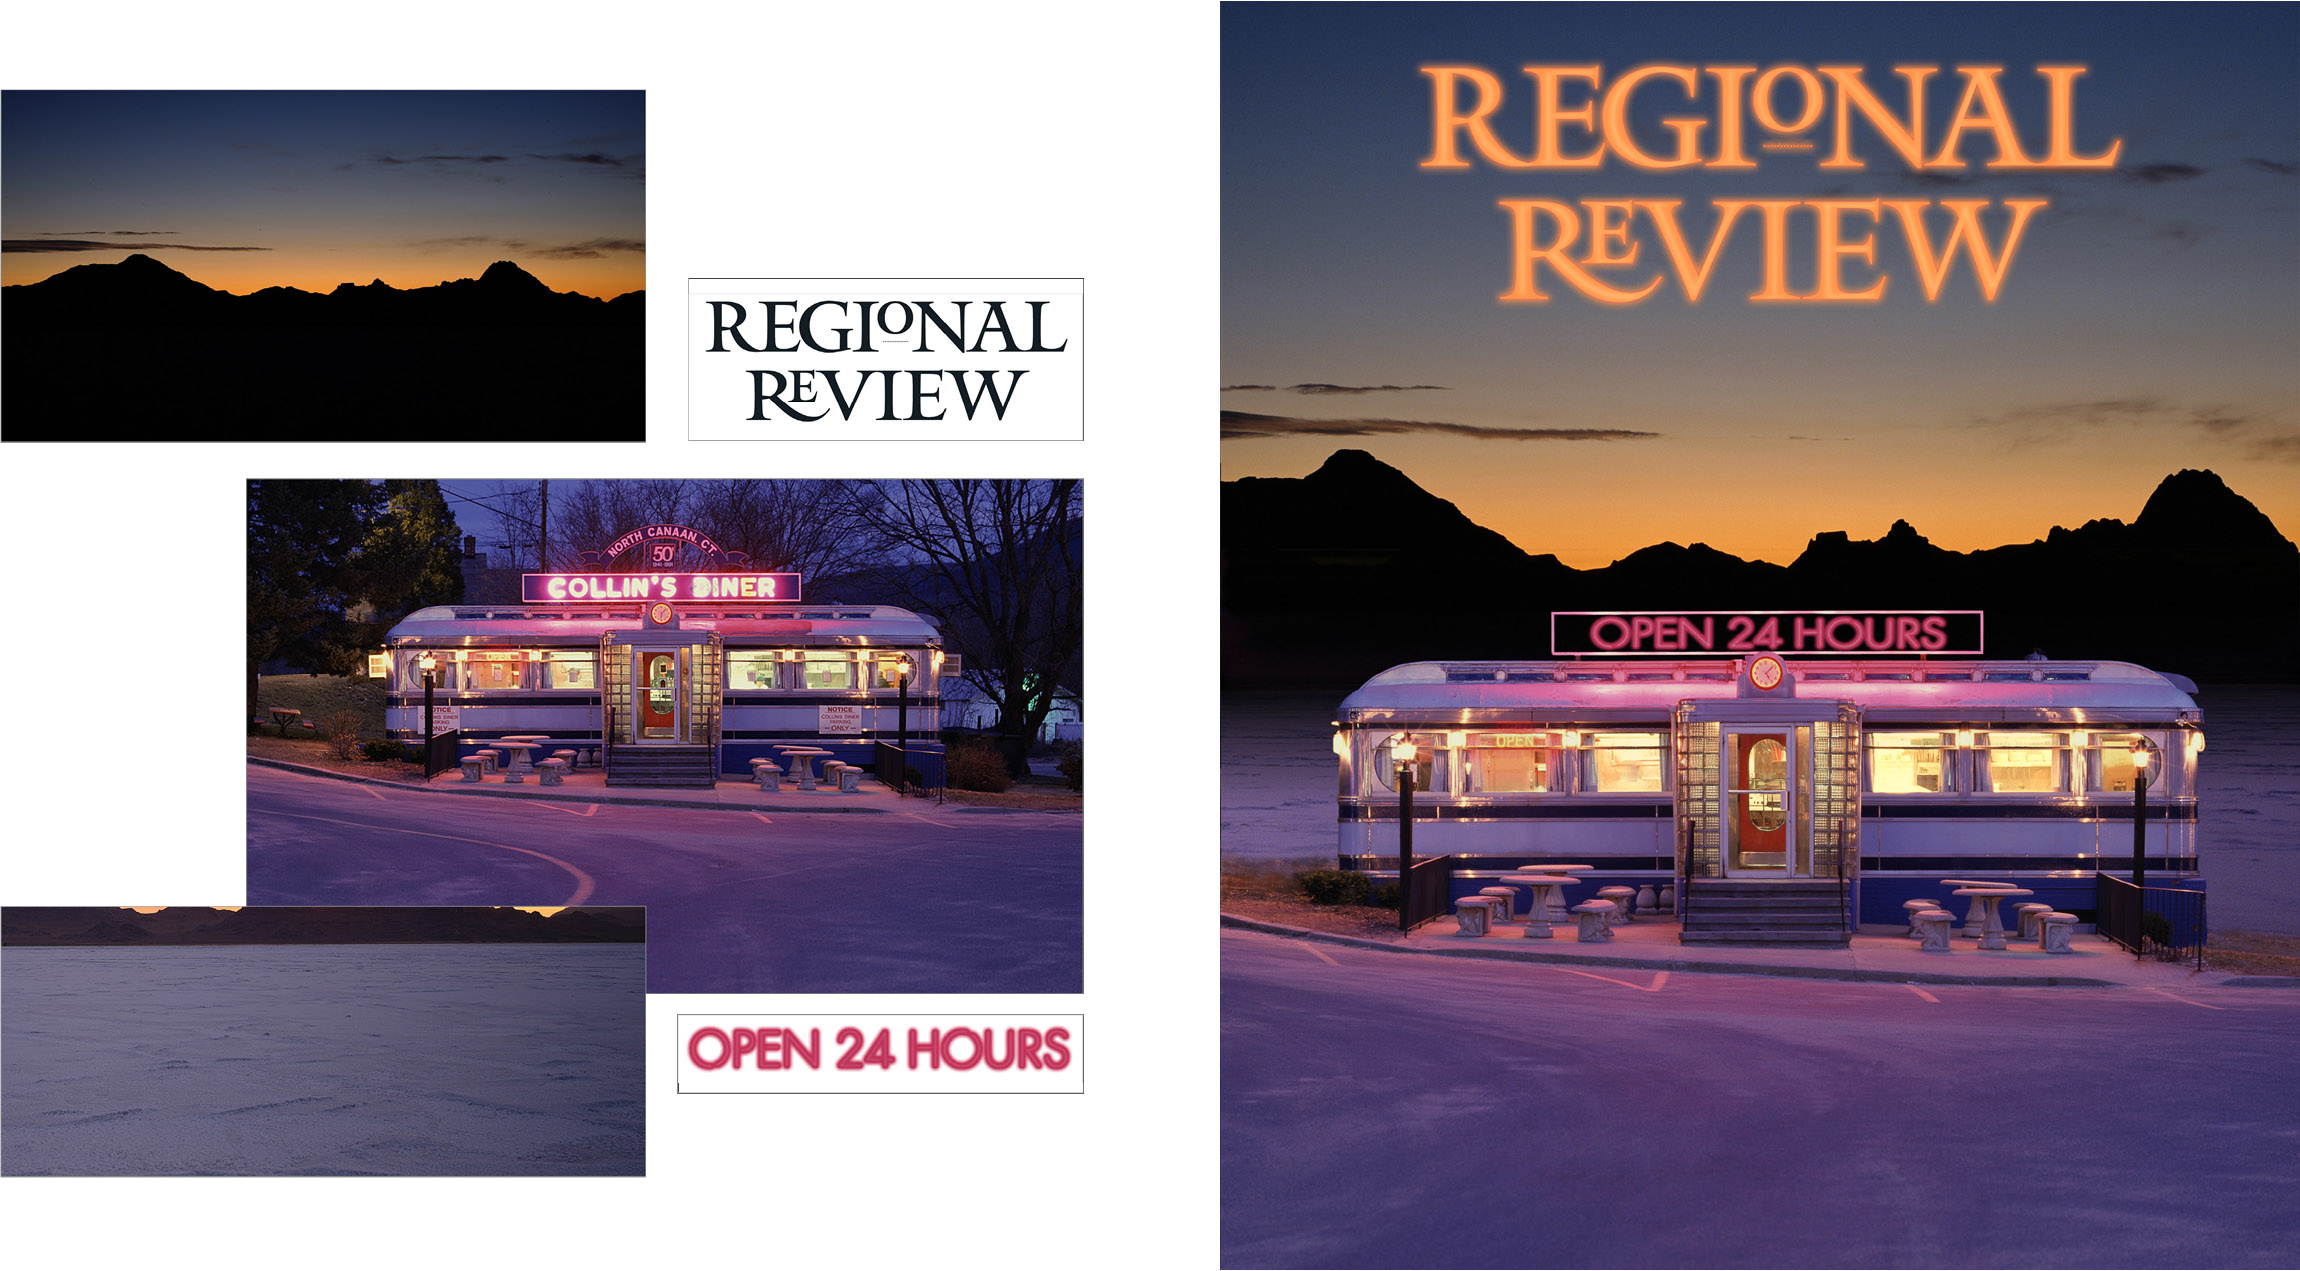 Regional Review Magazine - Federal Reserve bank of Boston